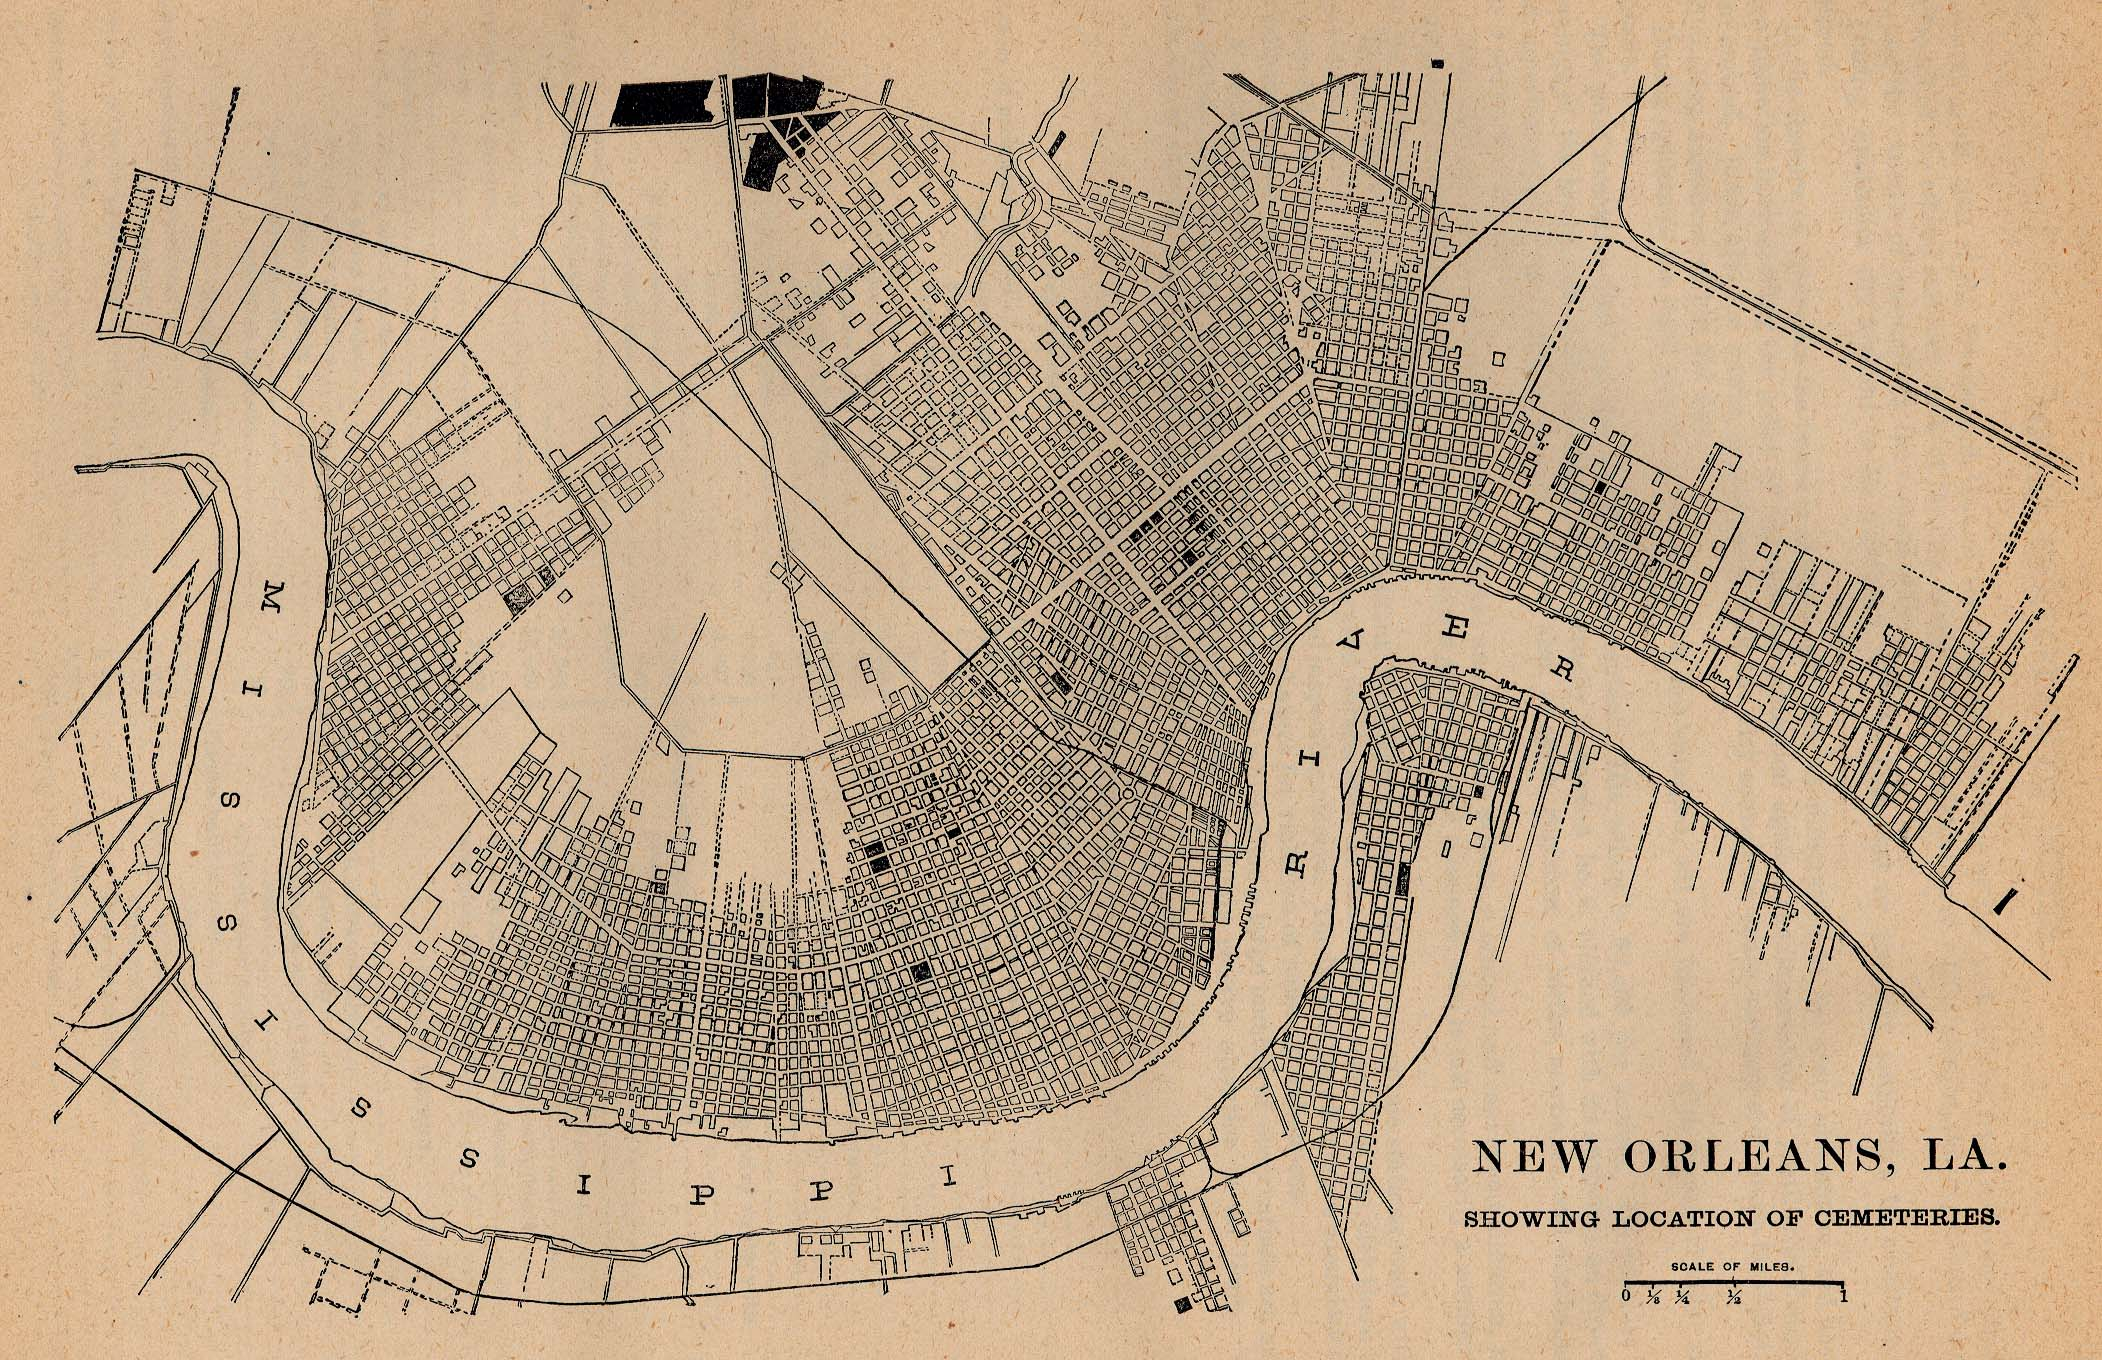 Location of Cemeteries Map, New Orleans, Louisiana, United States 1880